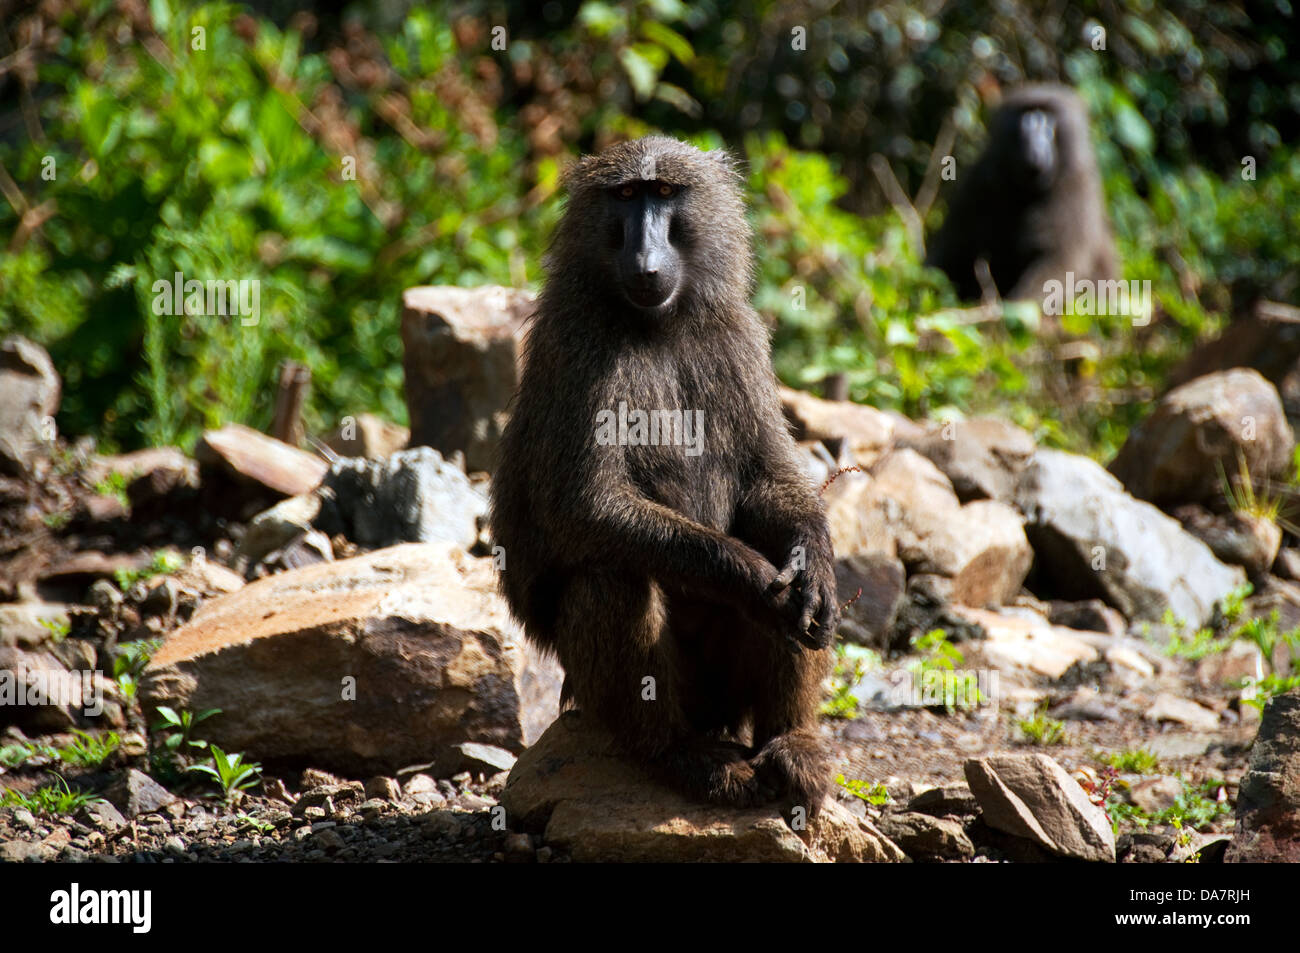 Baboon on the side of the road, Ethiopia - Stock Image